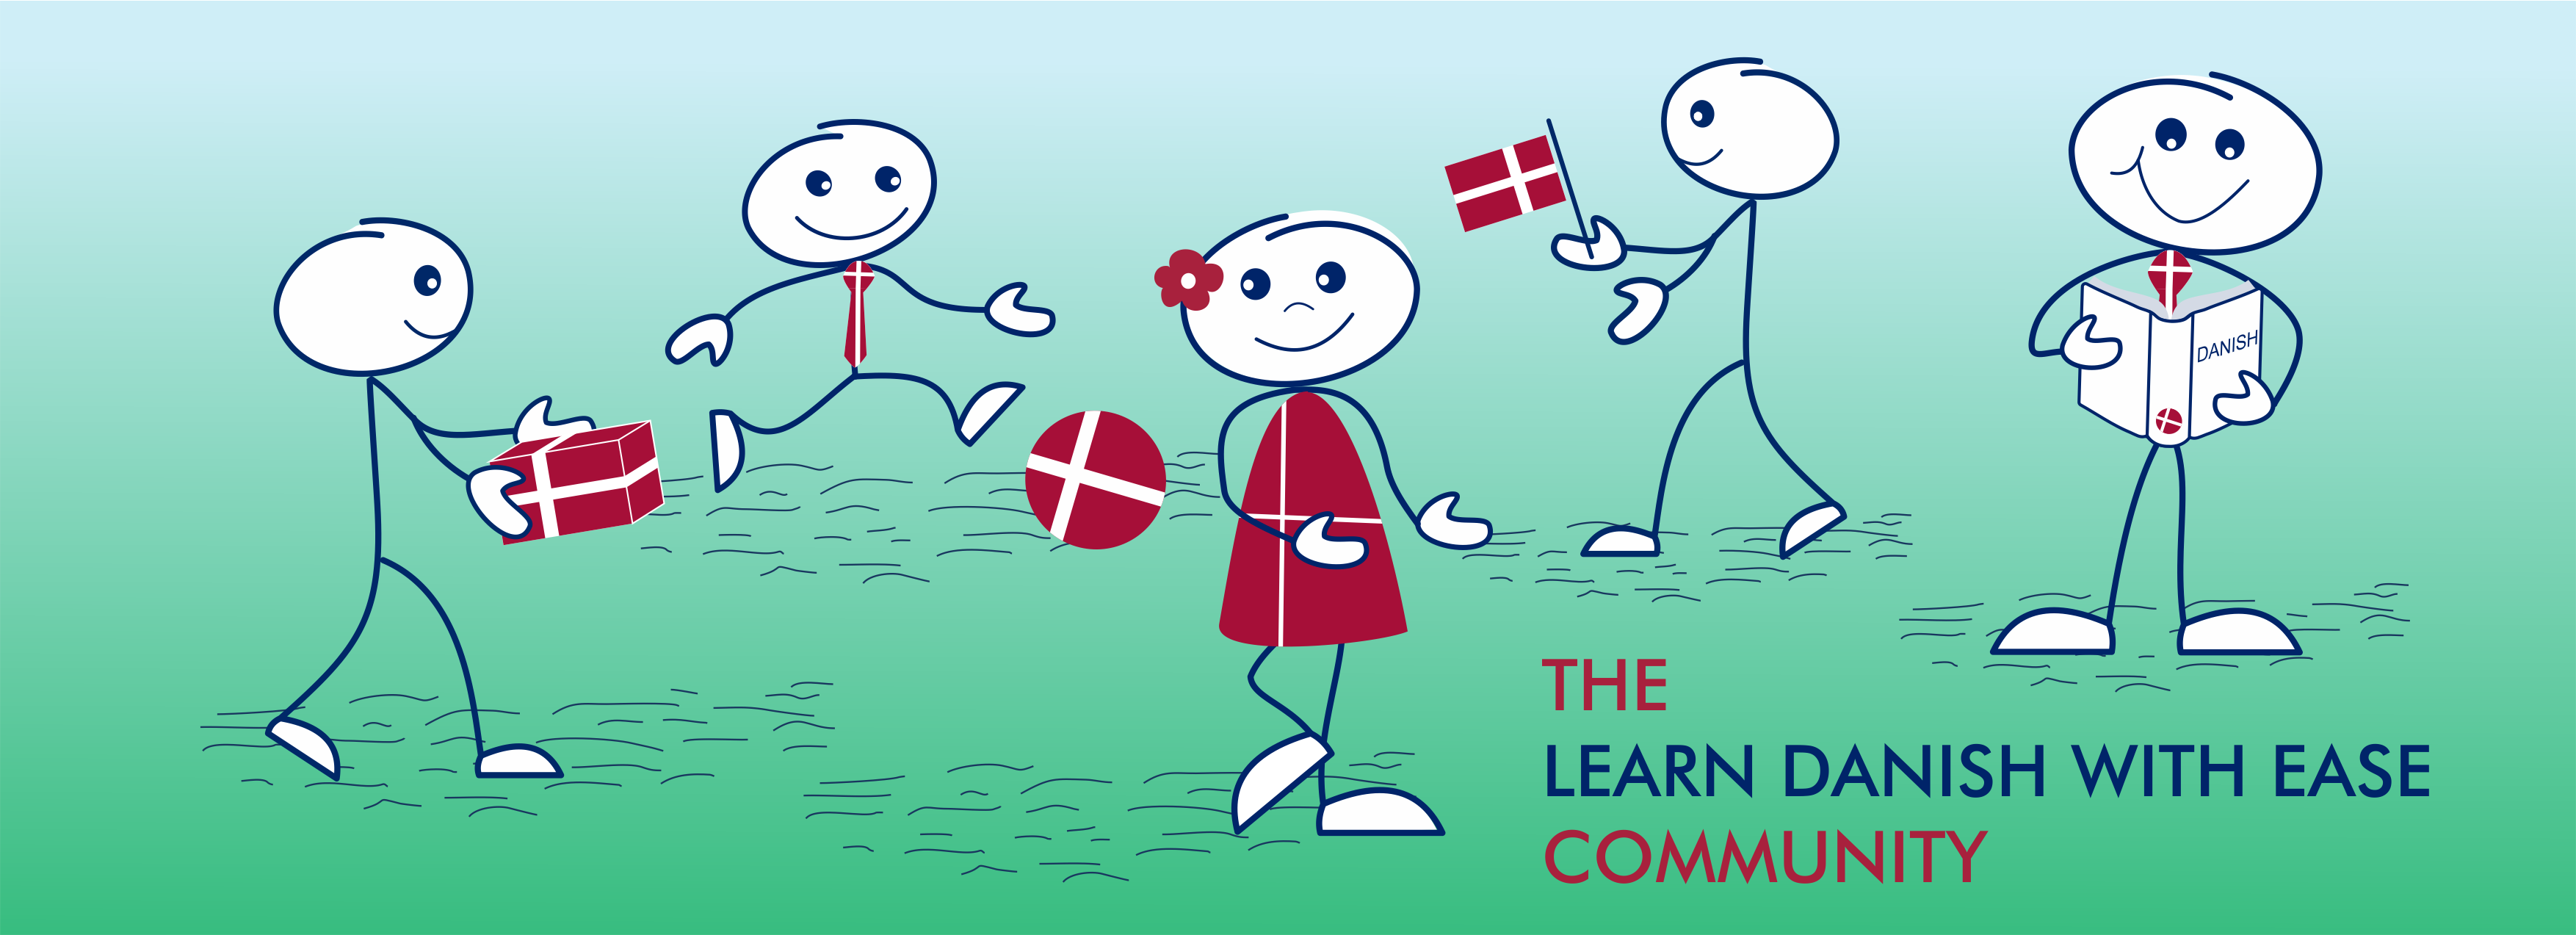 The Learn Danish with Ease Community